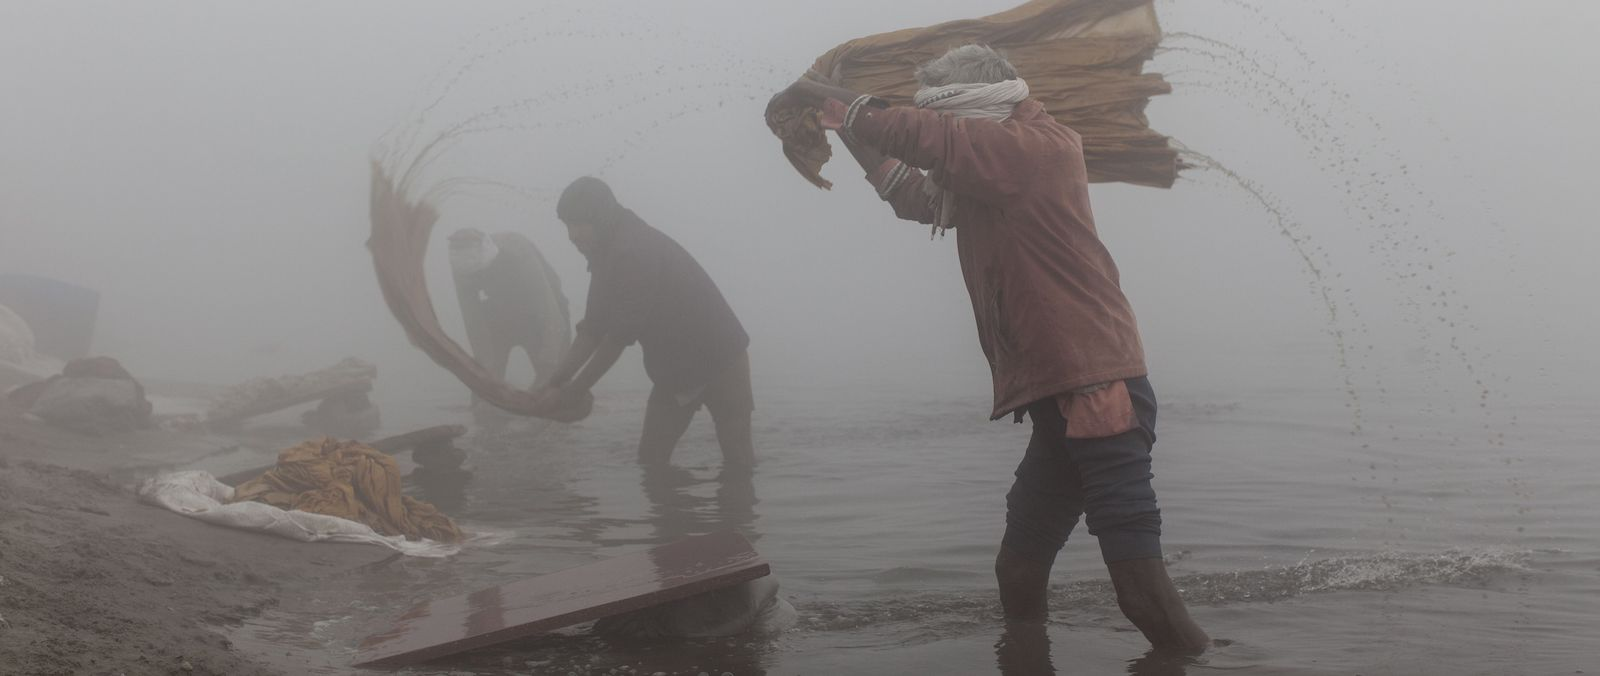 An open air laundry on the banks of the Yamuna River amid heavy fog and smog conditions (Photo: Xavier Galiana via Getty)